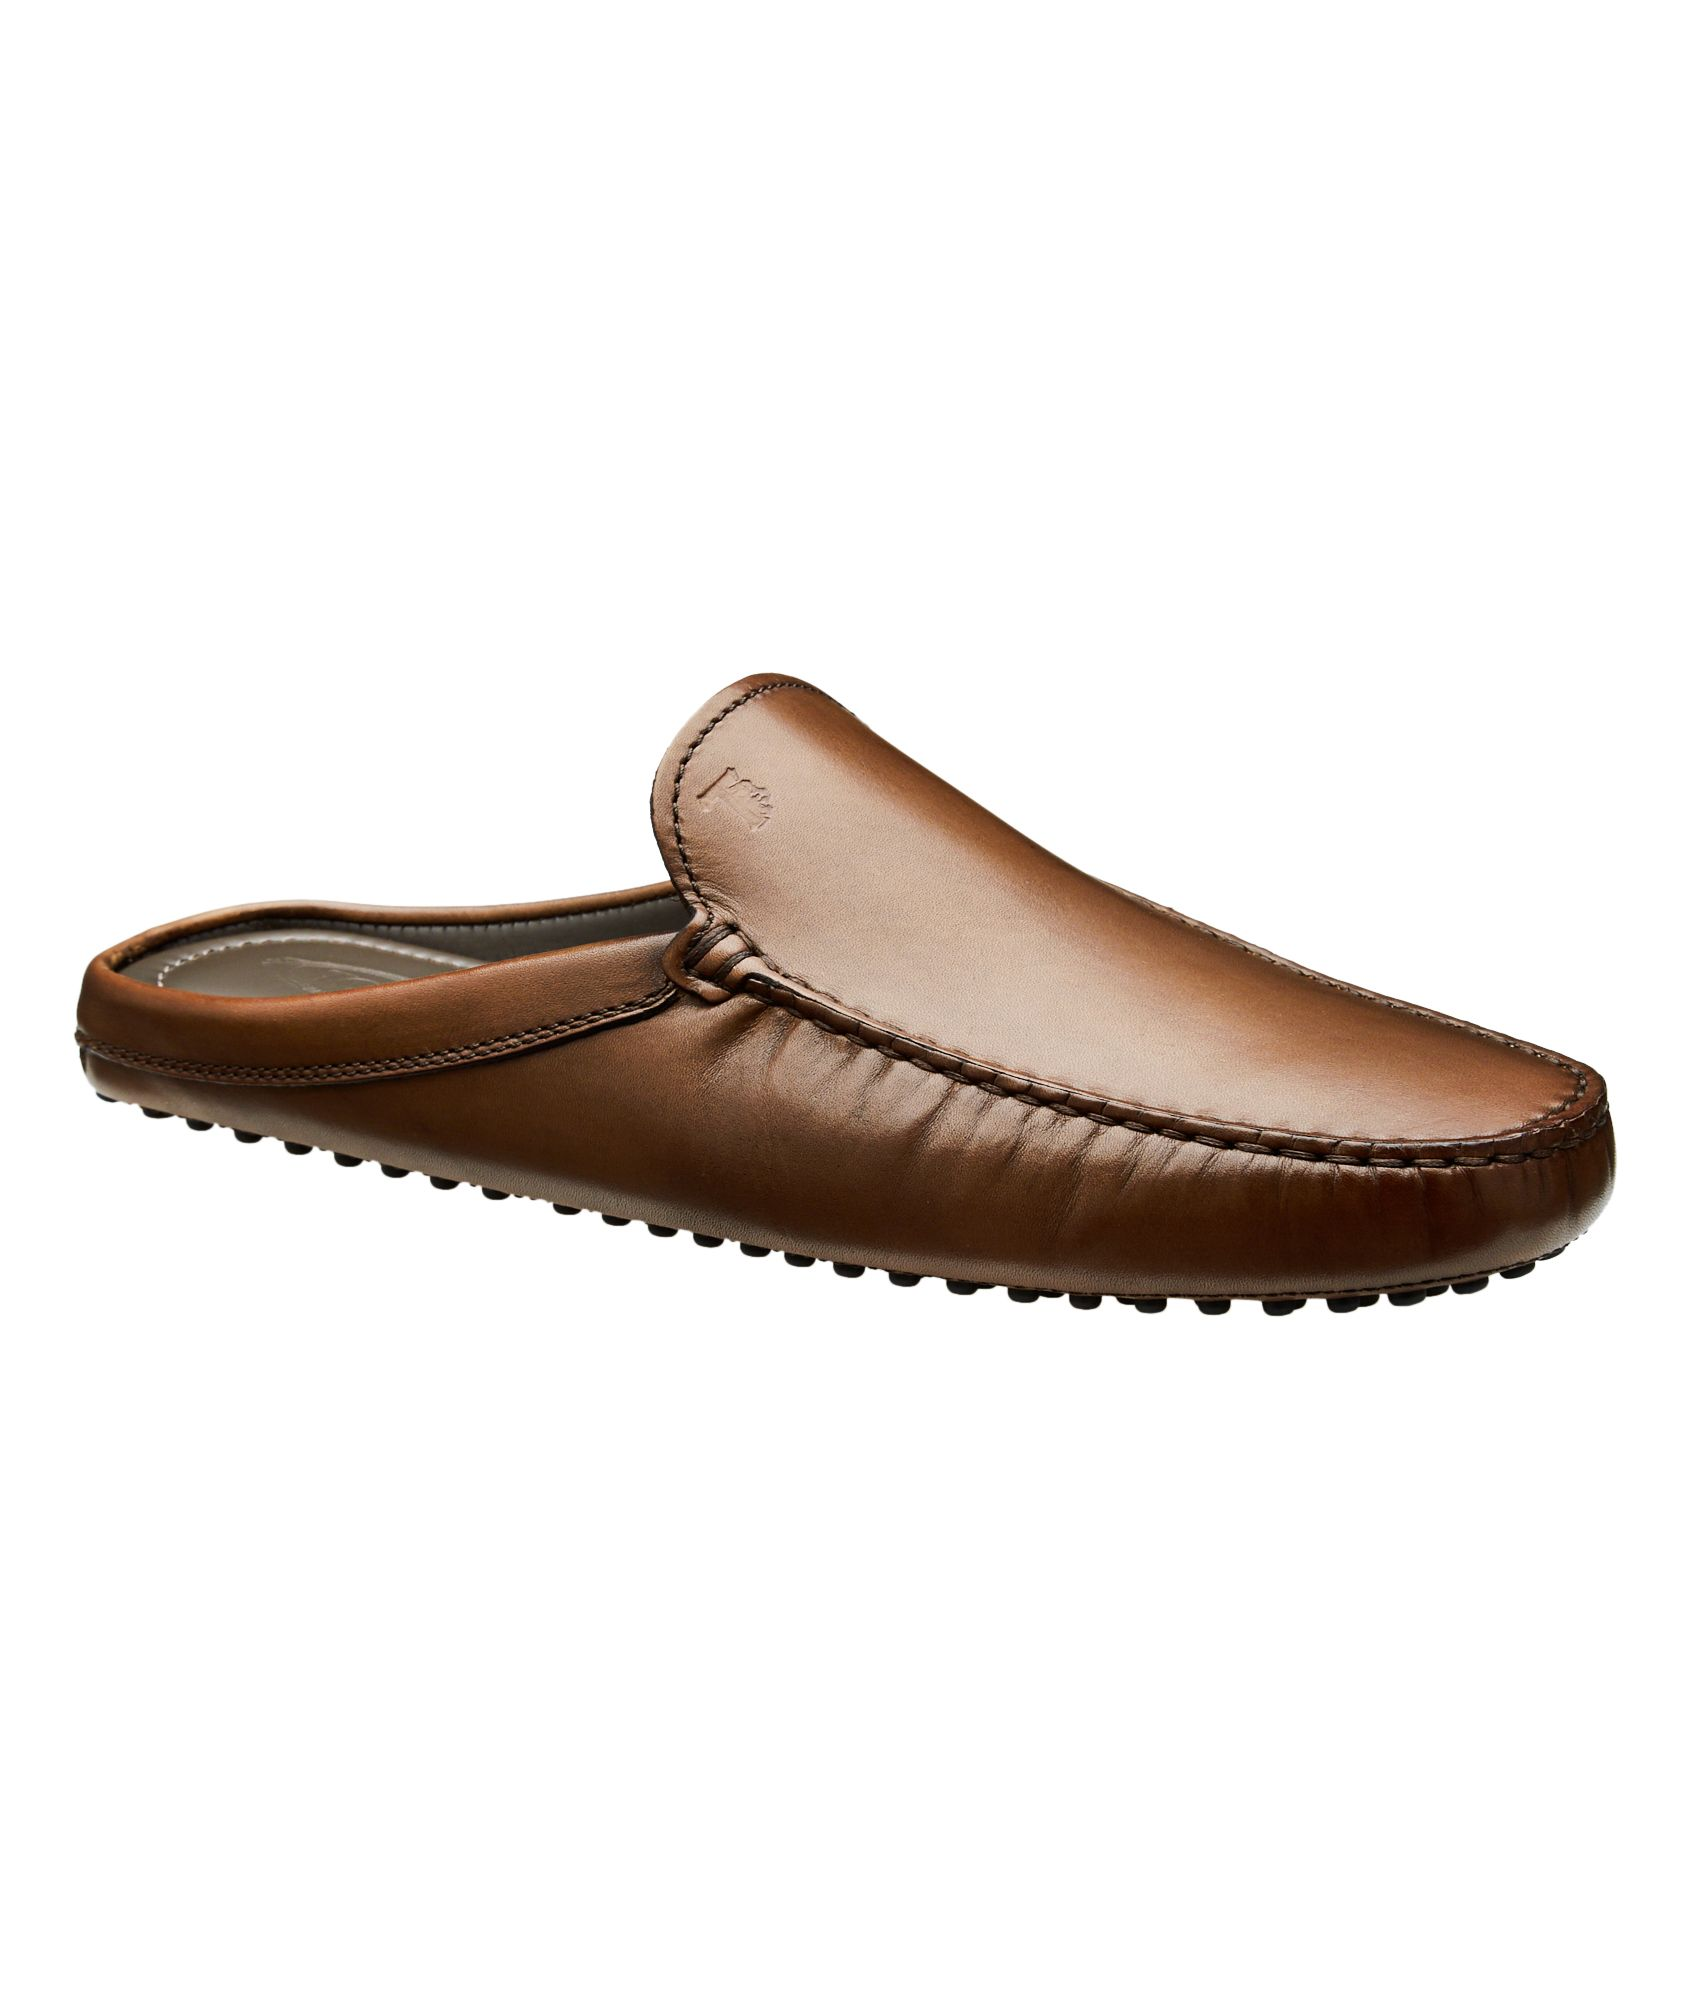 Gommino Leather Slippers